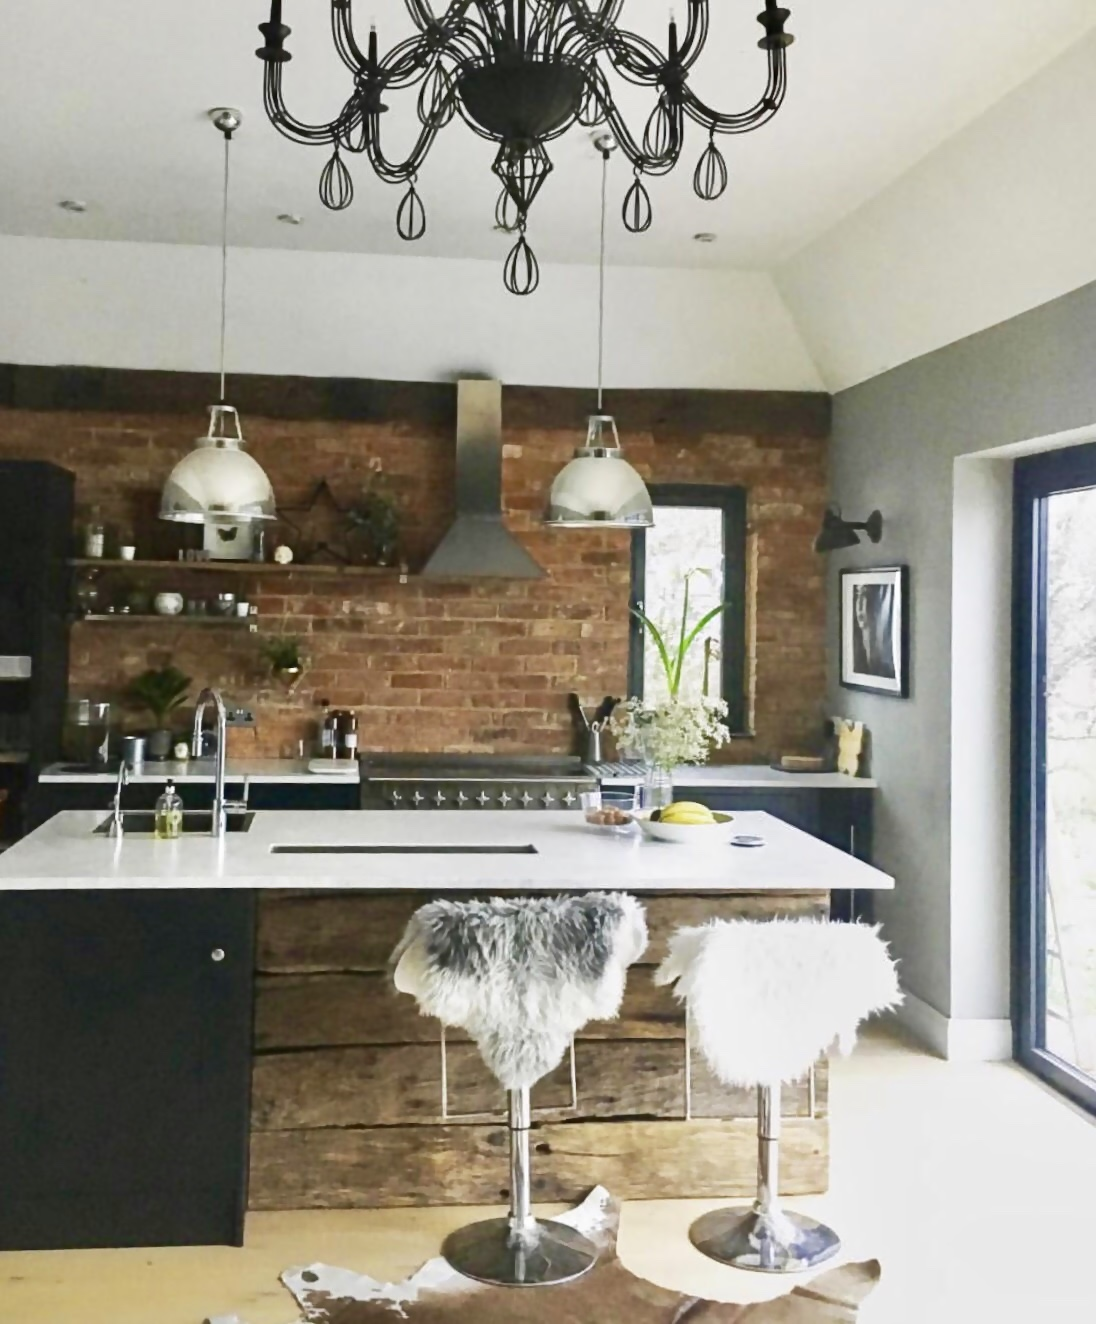 A kitchen photo from the early days of my Instagram...... We had to use what we had as we had no budget to buy anything else new for the kitchen so we spray painted a BHS chandelier black to go over the dining table and hid the white chrome stools with sheepskins.